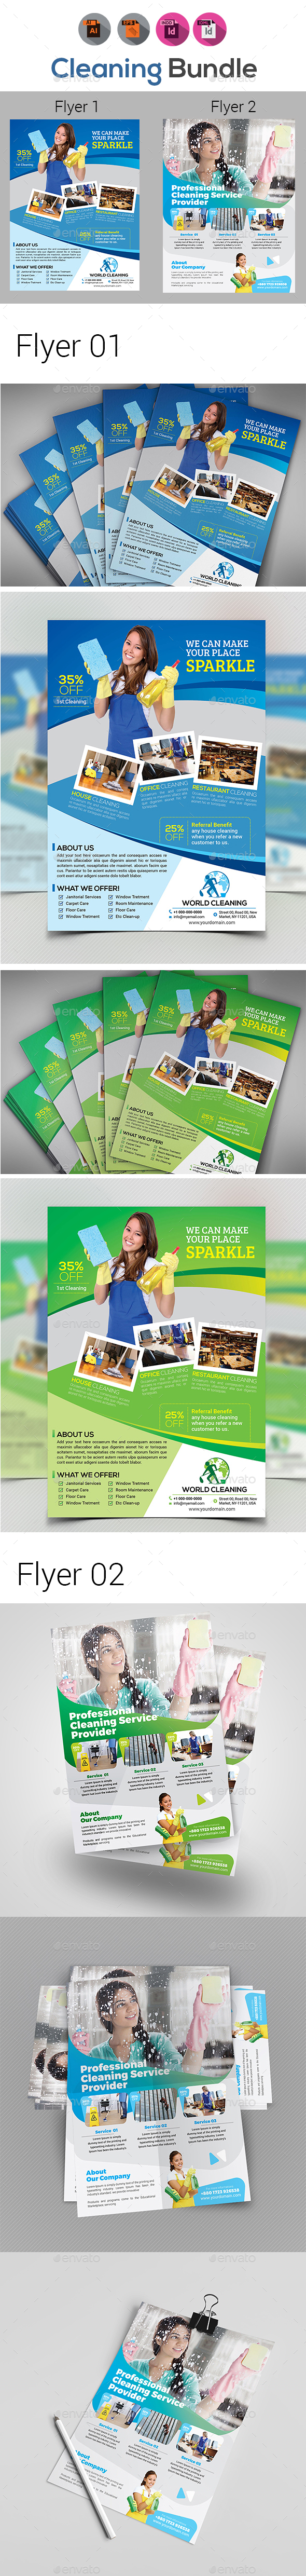 Cleaning Service Flyers - Commerce Flyers